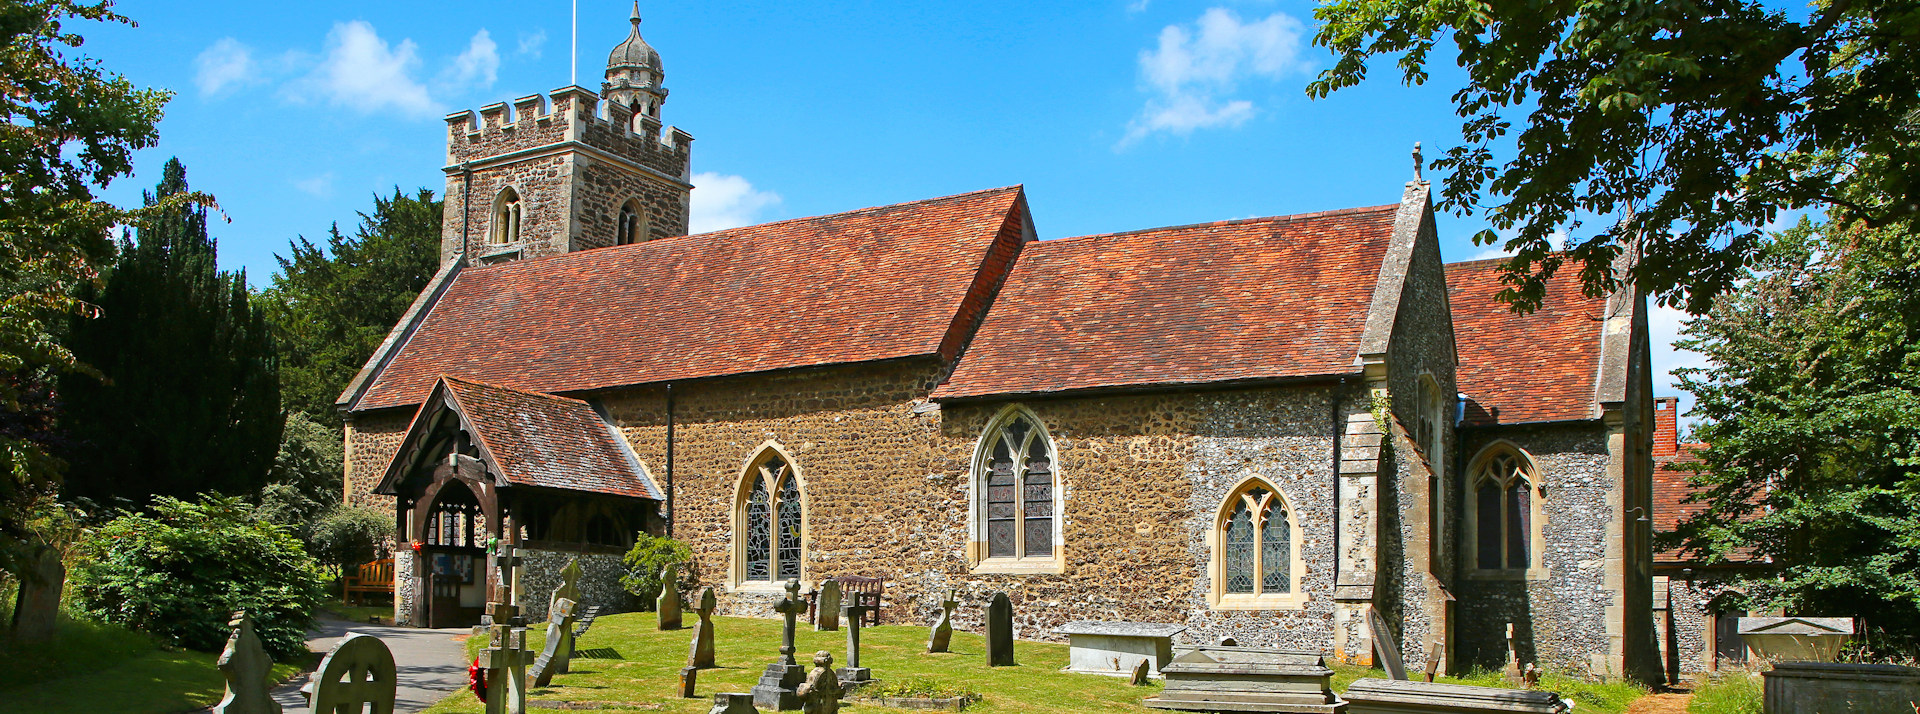 All Saints' is our lovely medieval Church in Binfield